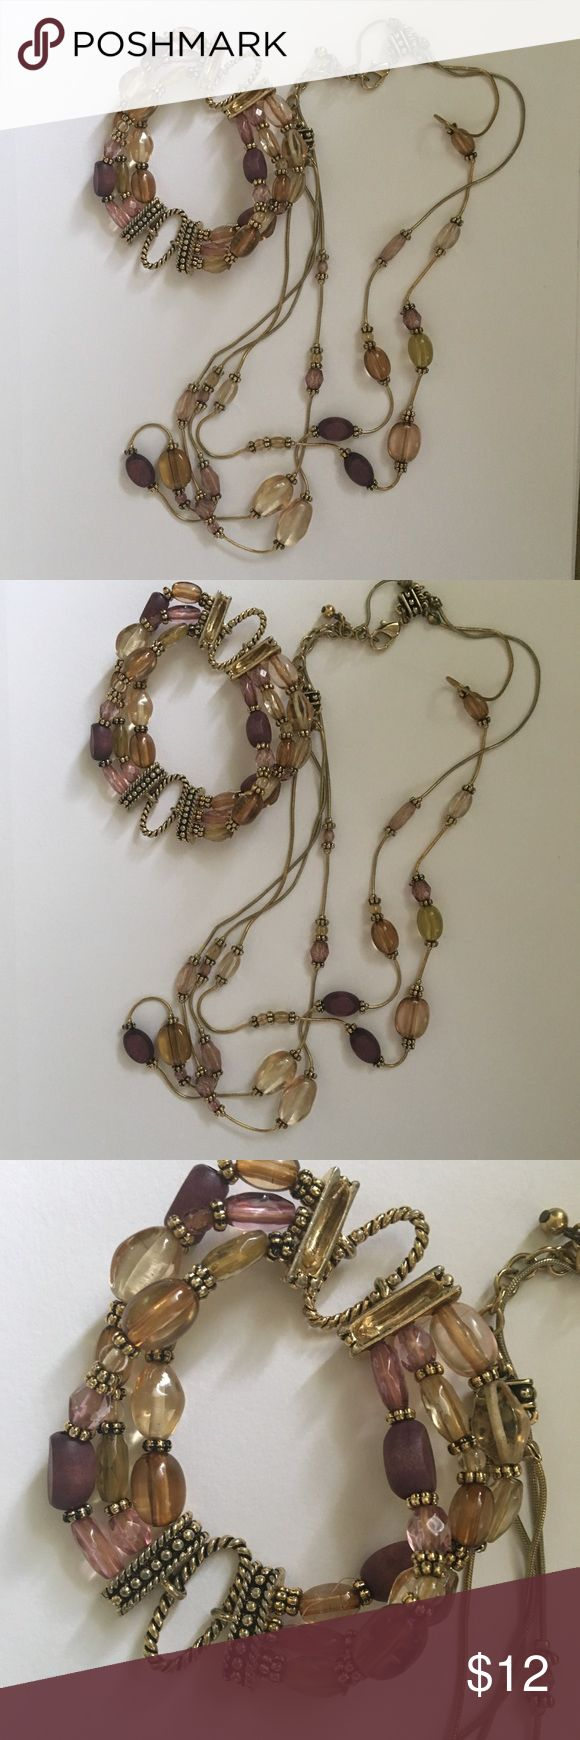 Necklace and bracelet set Necklace and bracelet set.  Necklace has lobster clasp and bracelet has three rows of elastic covered in beads and gold.  Colors are slight green,smoky topaz, lavender, and dark purple. Jewelry Necklaces